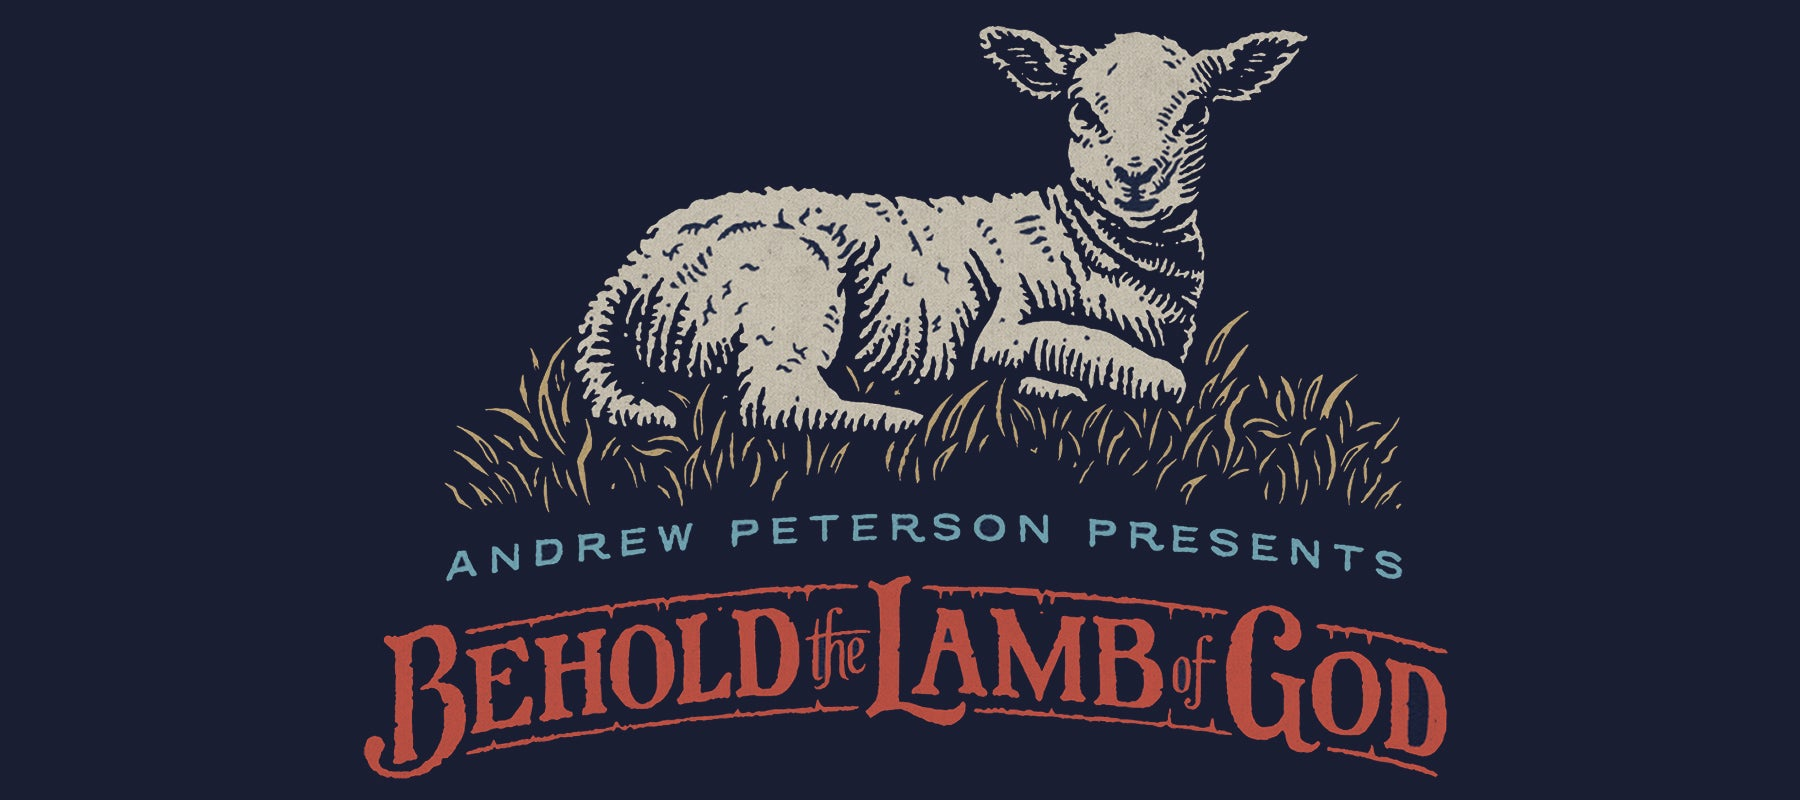 Andrew Peterson Presents Behold the Lamb of God